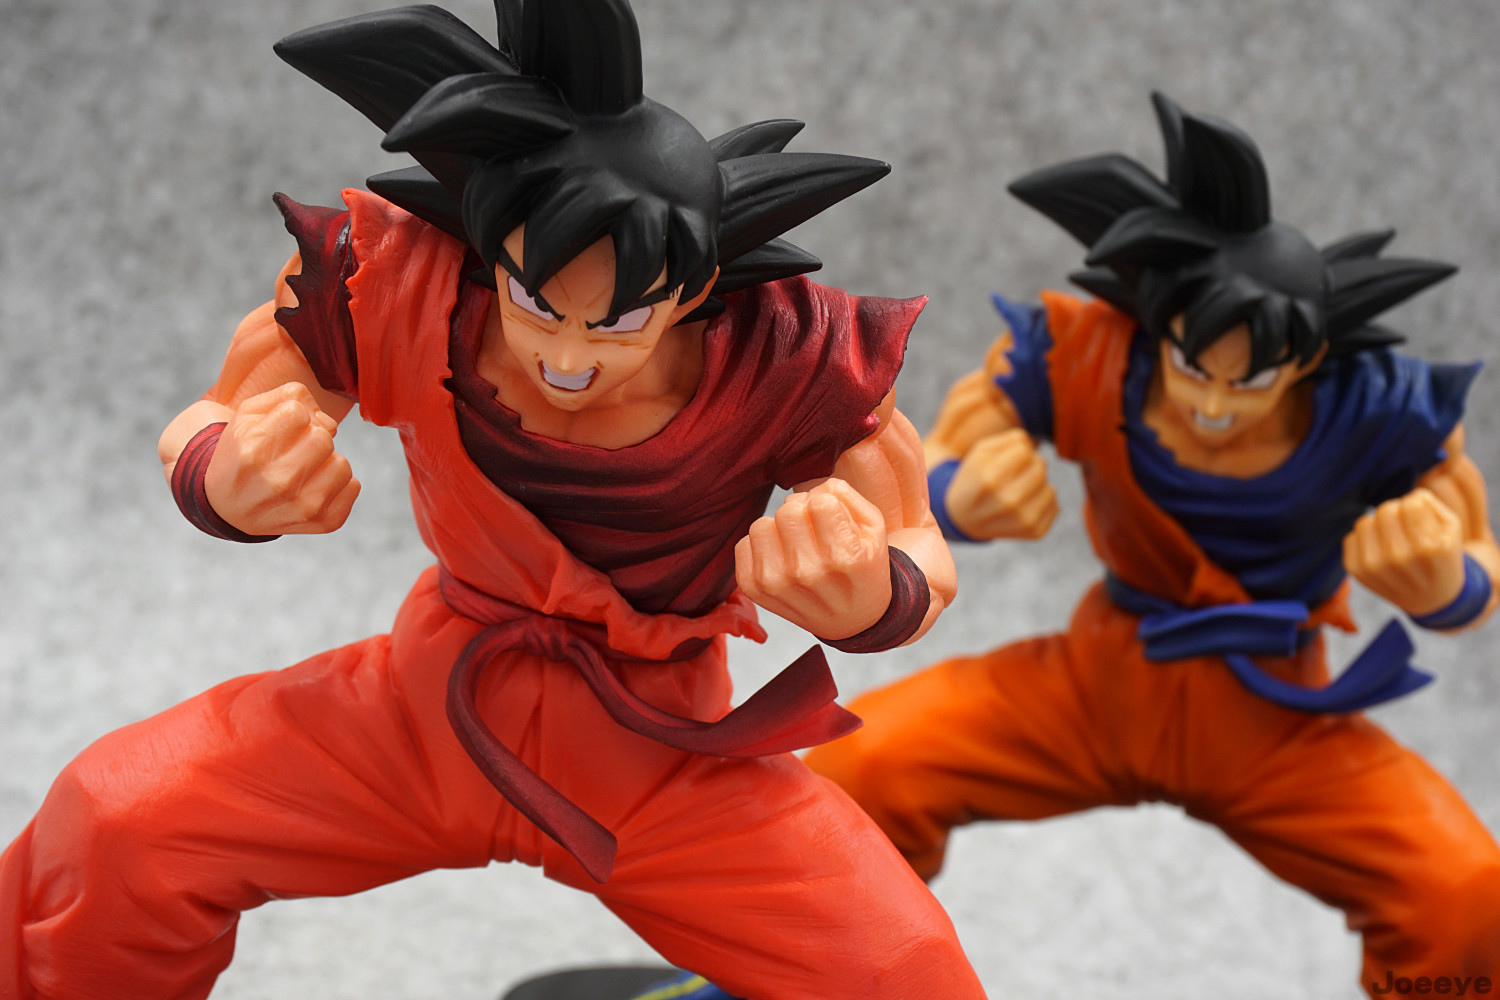 banpresto son_goku shueisha toei_animation nakazawa_hiroyuki inc. bird_studio fuji_television_network dragon_ball_super son_goku_fes!!_stage3 son_goku_fes!!_stage2